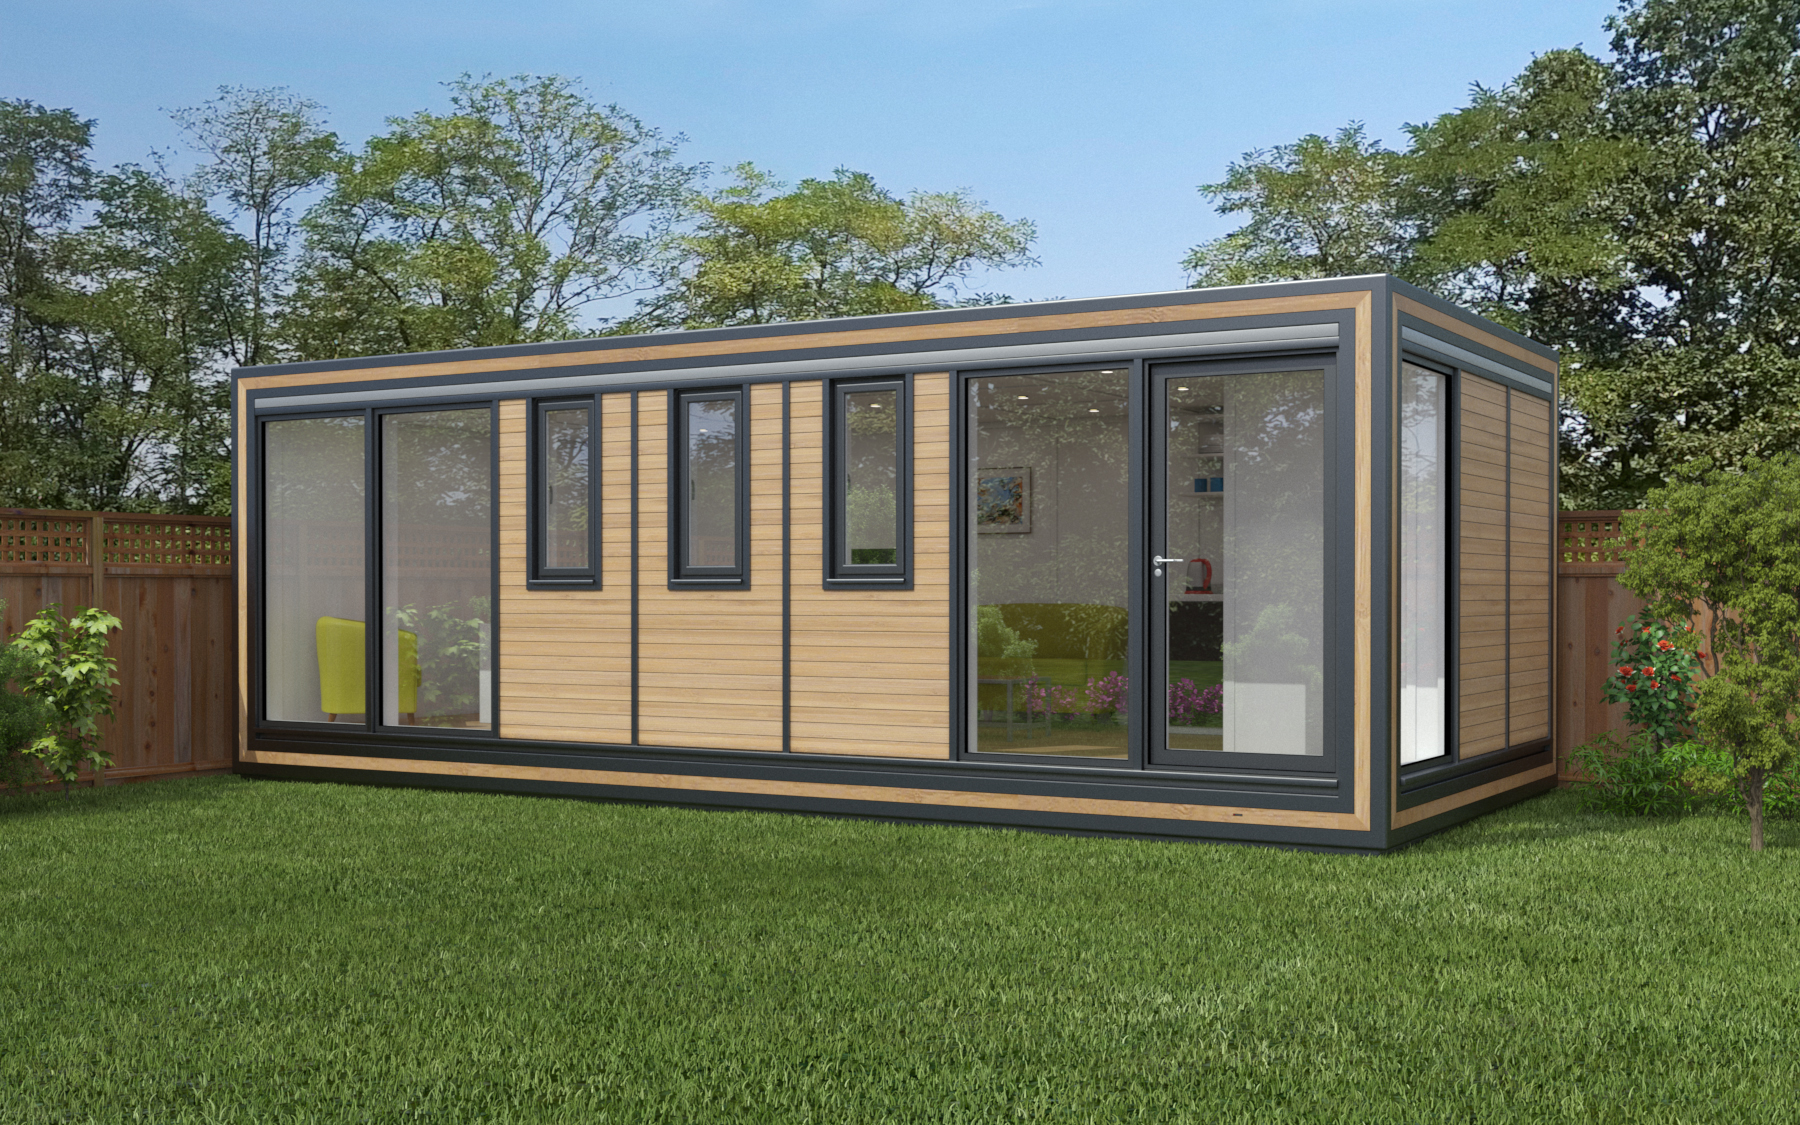 ZEDBOX 730  (7 x 3)  Internal Size: 7472 x 3188  External Size: 7942 x 3658  Bed Options: Single or Double  Kitchen Options: Micro Kitchen or Kitchen  Wet Room Options: Yes  Portico: No  Price:  £34,000    Optional Extras    Request Zedbox Catalogue